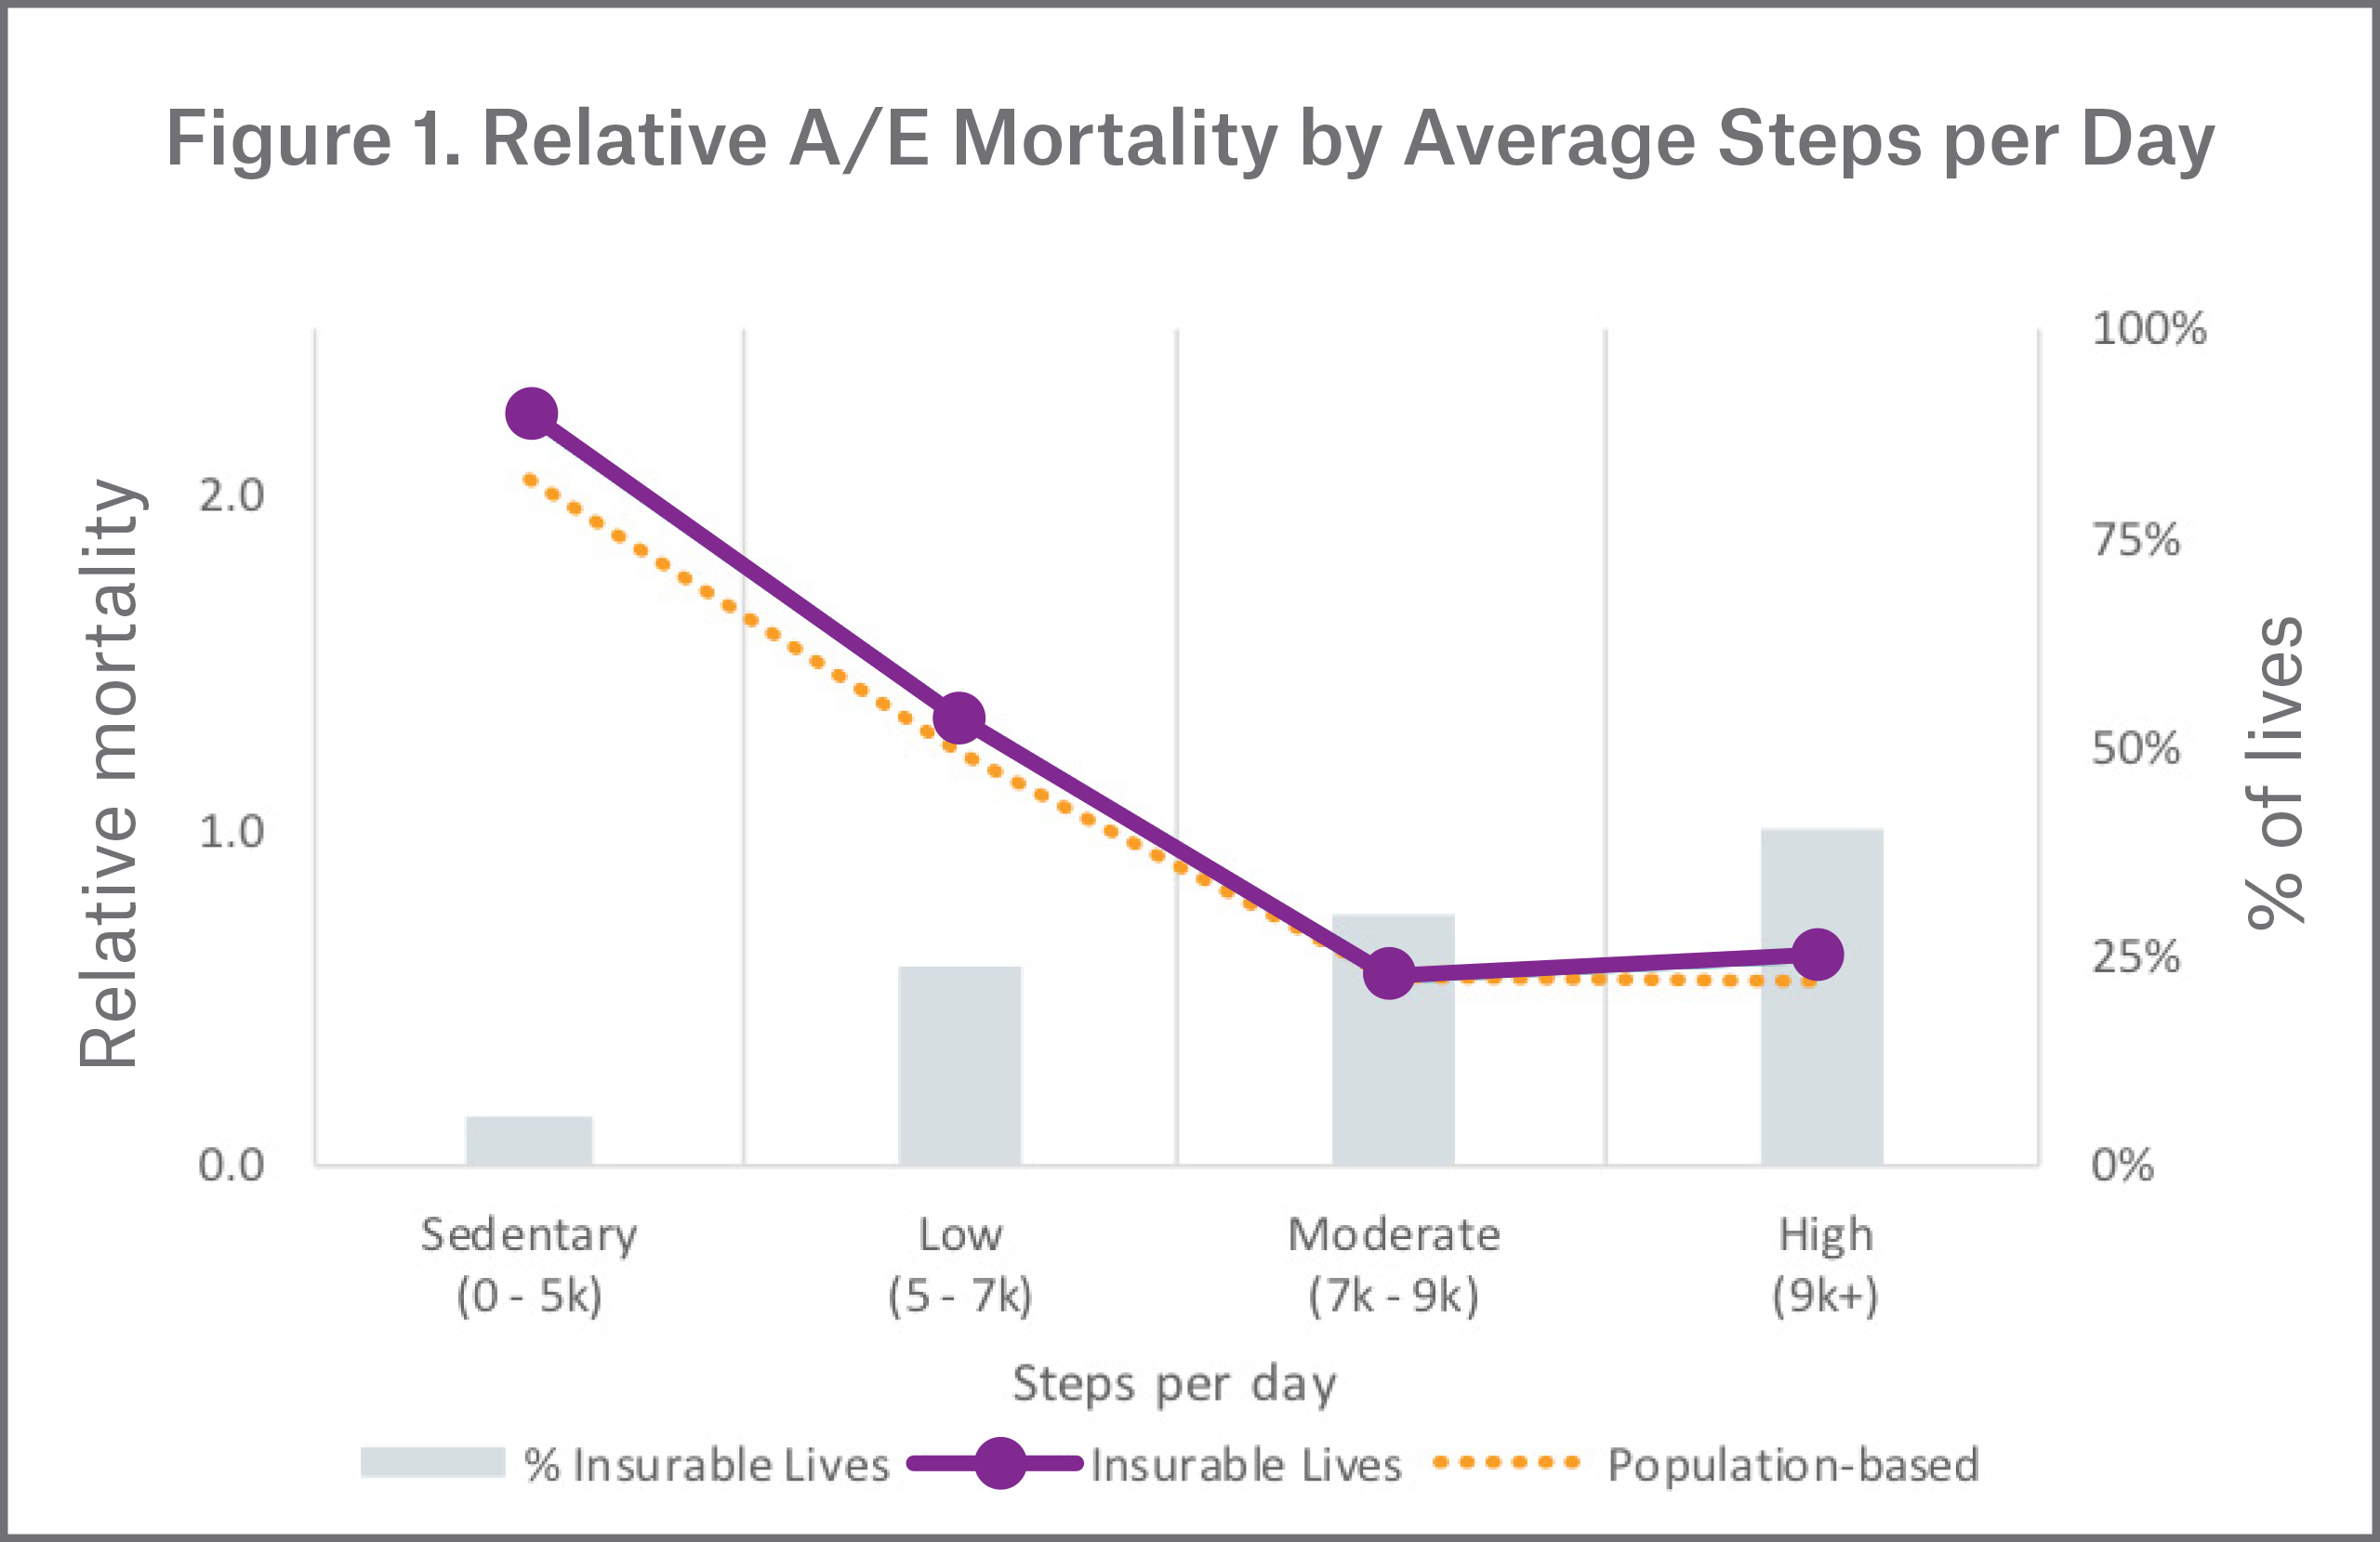 Relative A/E Mortality by Average Steps per Day Figure